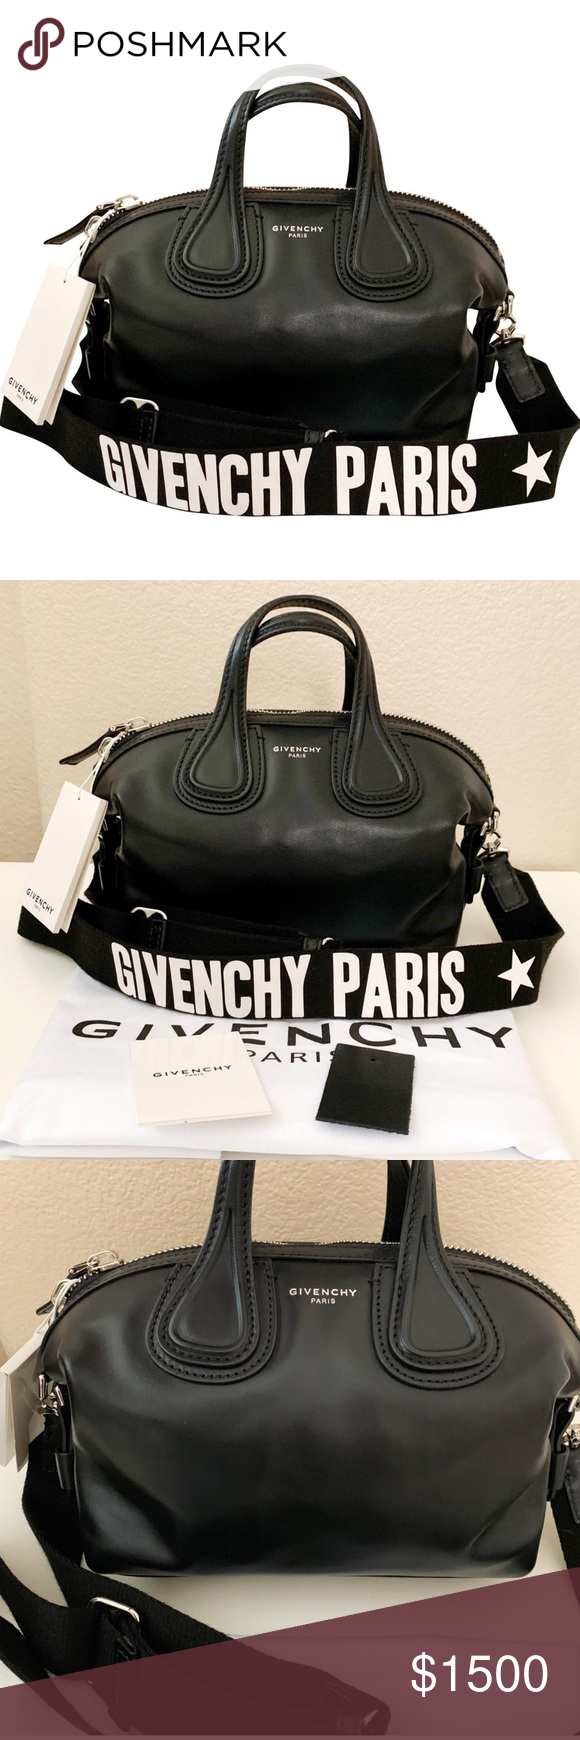 NWT Givenchy Micro Nightingale Satchel Logo Strap 💫PRICE FIRM💫 100%  Authentic. New 14f6abed4087f